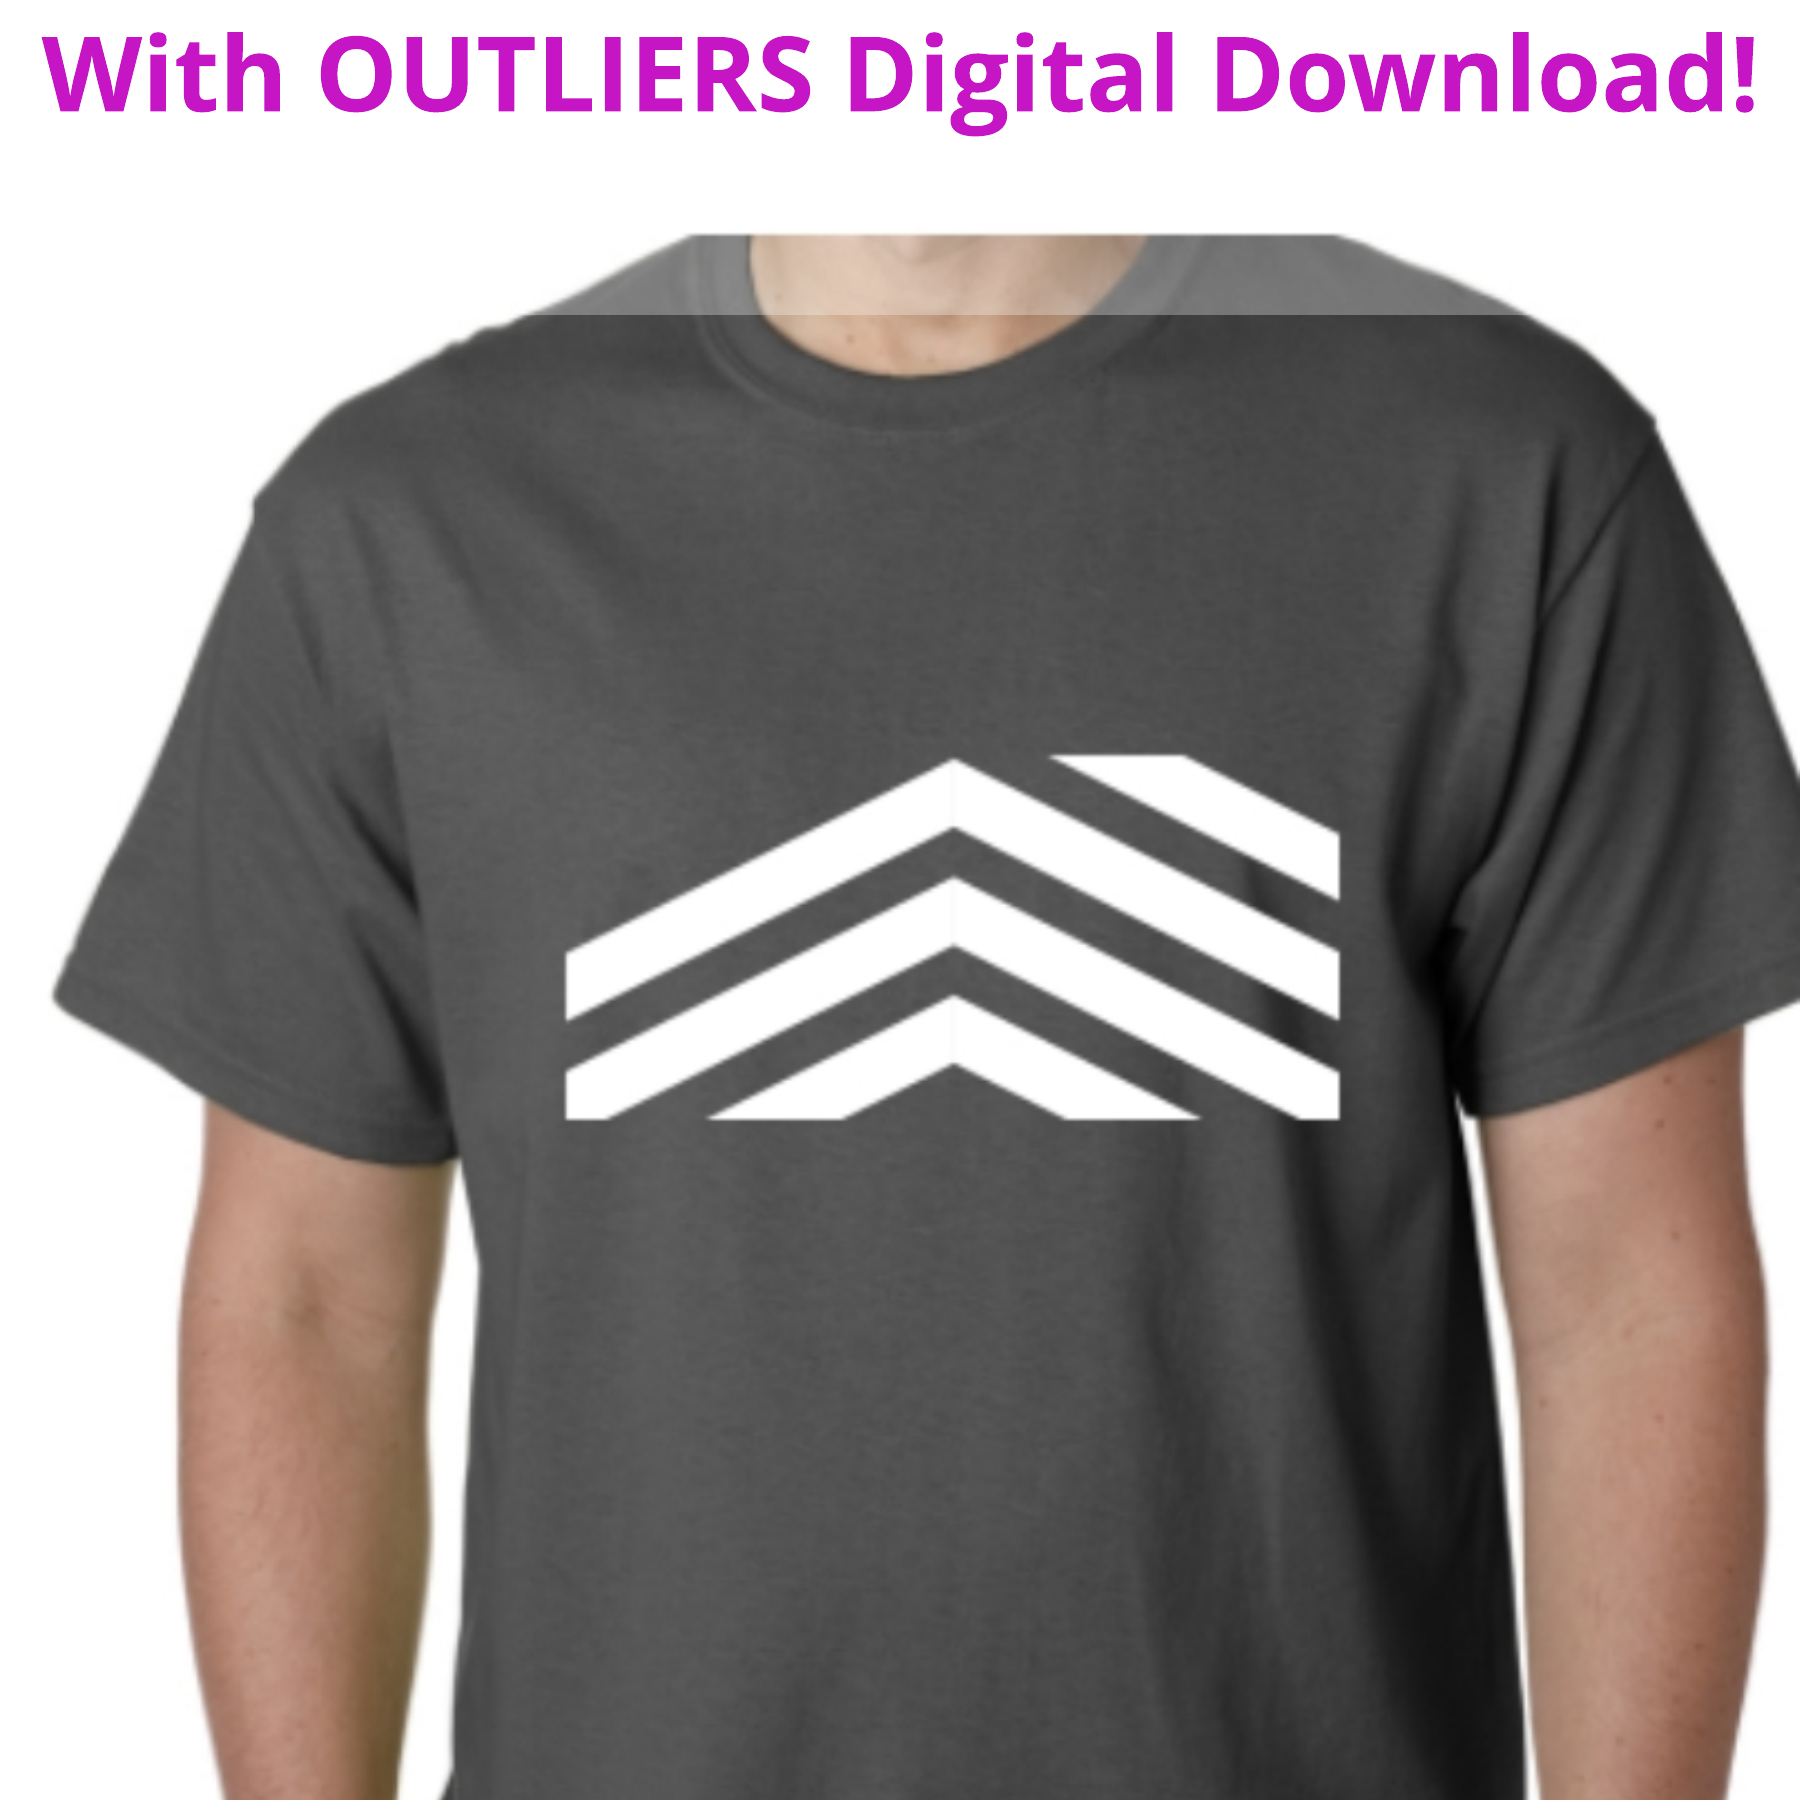 <b>OUTLIERS</b><small><br>T-shirt + OUTLIERS Full Digital Download<br></small><b>$25</b>